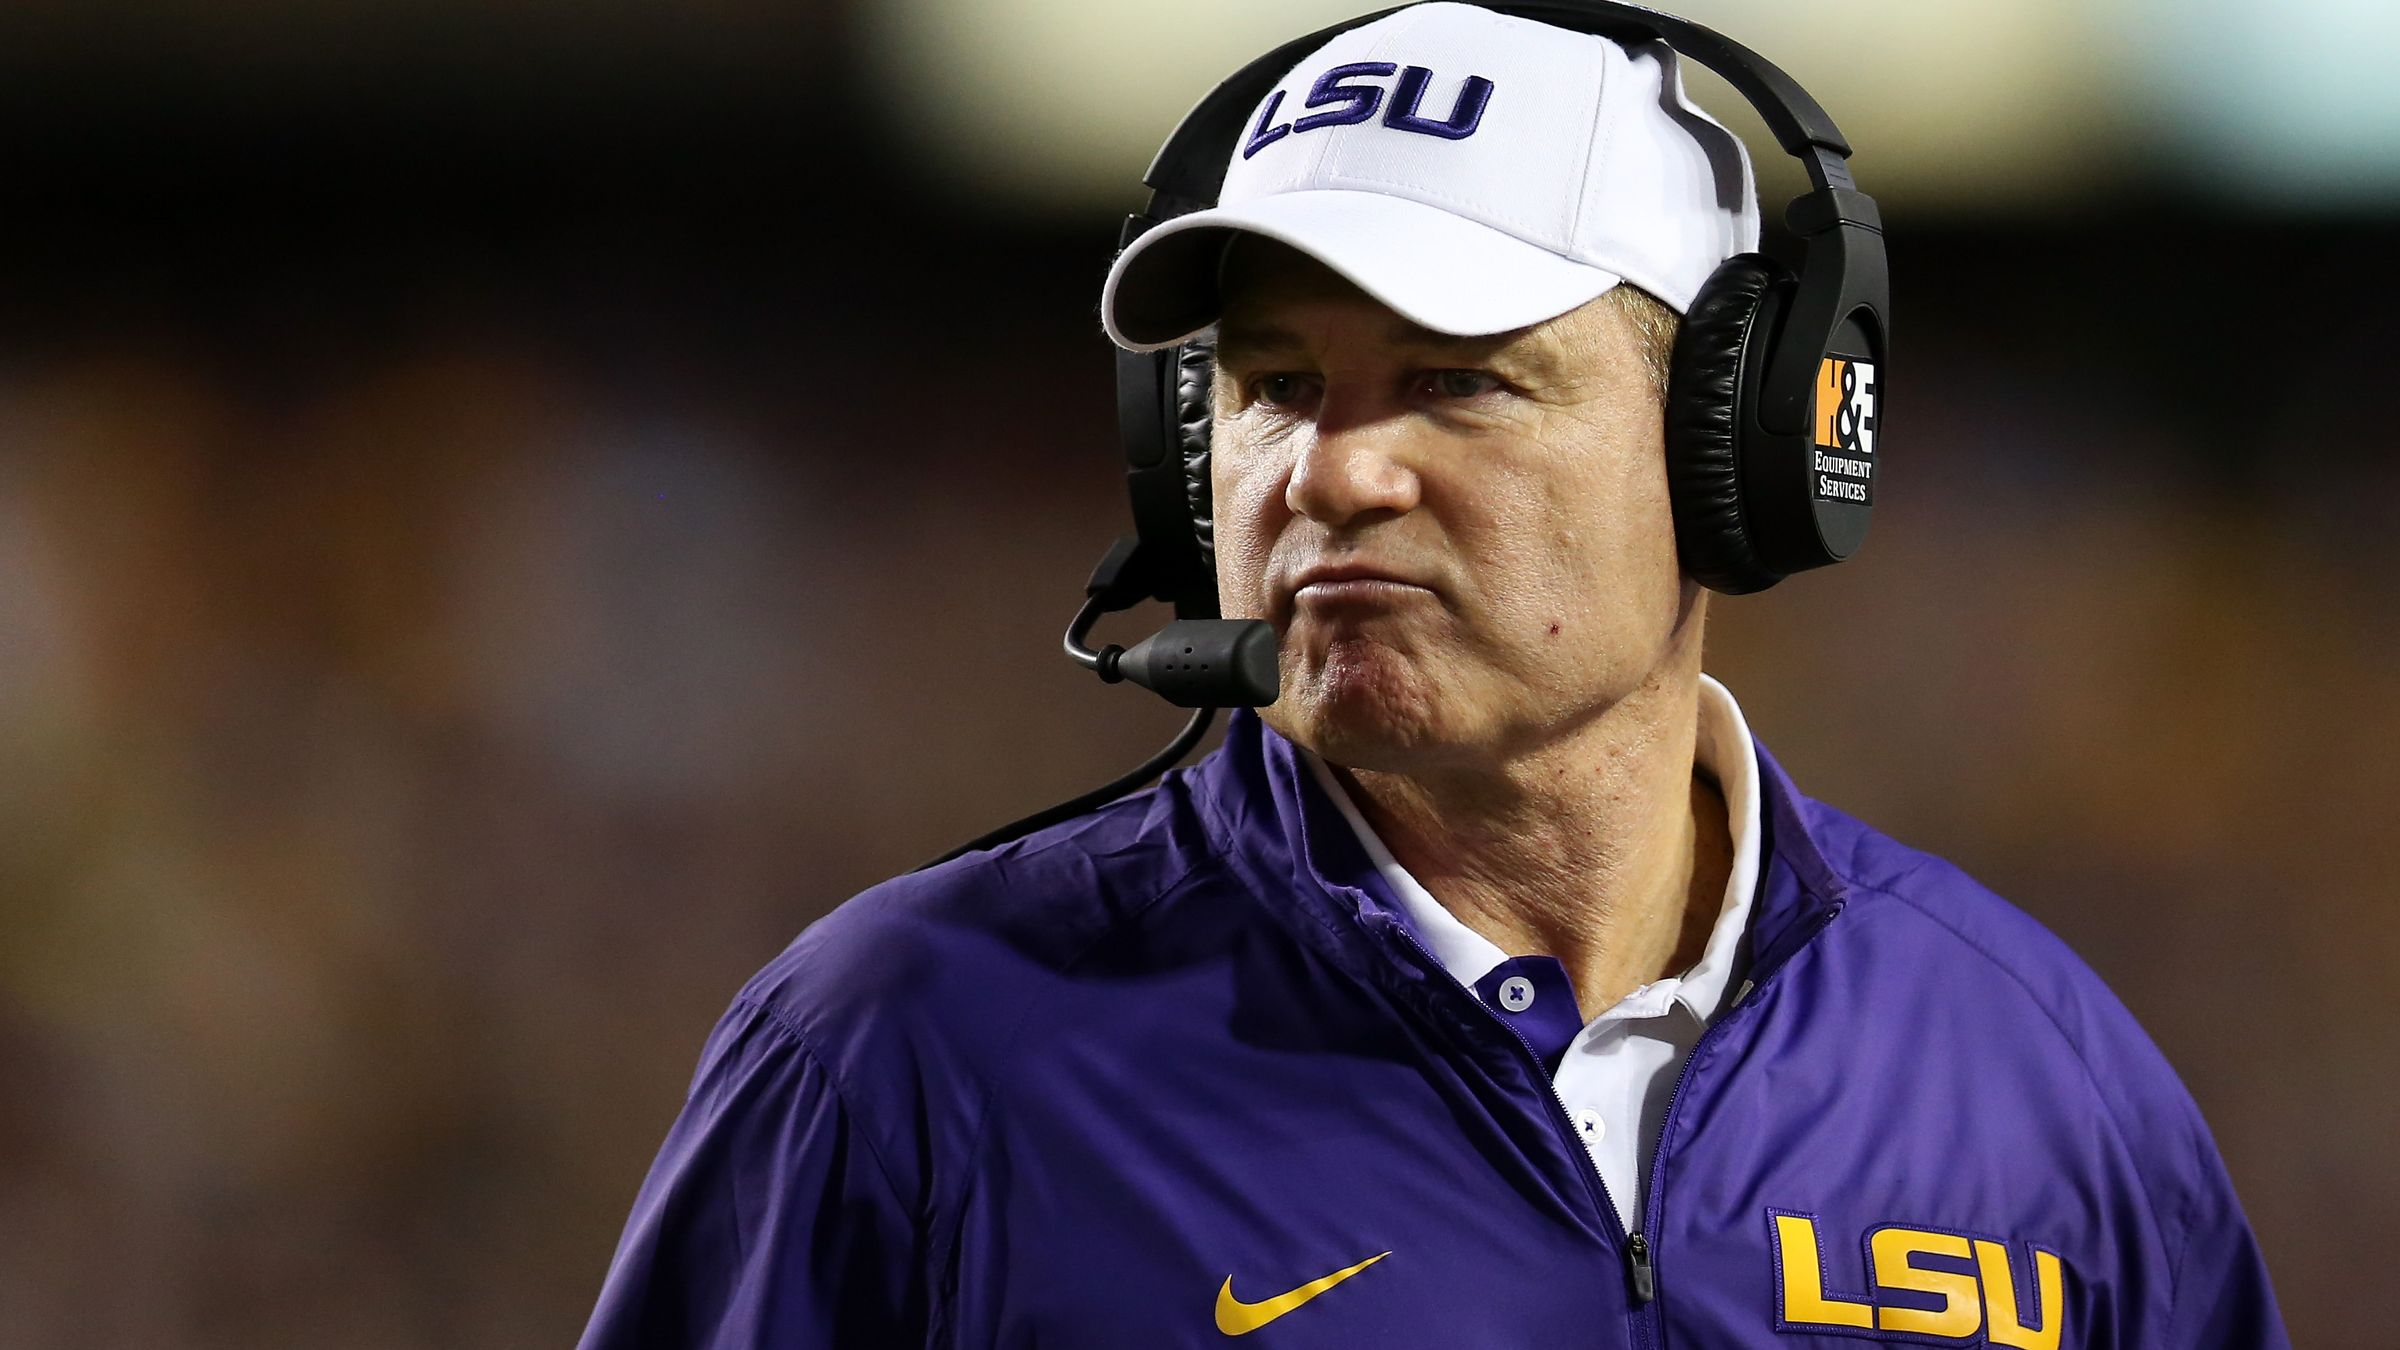 Full 2016 bowl projections, with LSU the No. 1 seed in the College Football Playoff